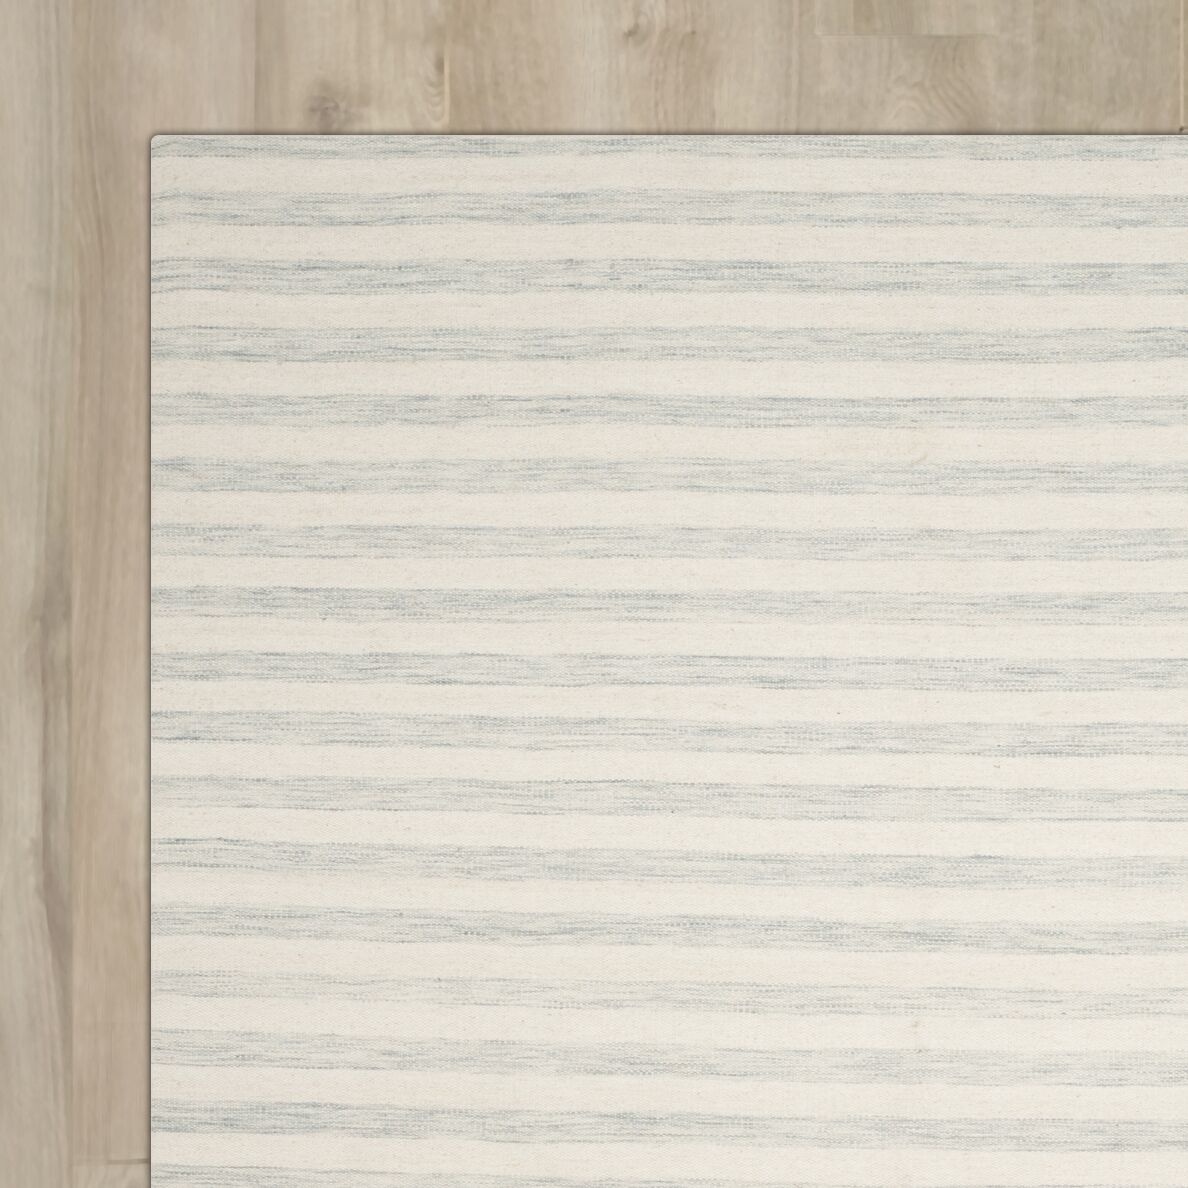 Crawford Hand-Woven Light Blue/Ivory Area Rug Rug Size: Rectangle 8' x 10'